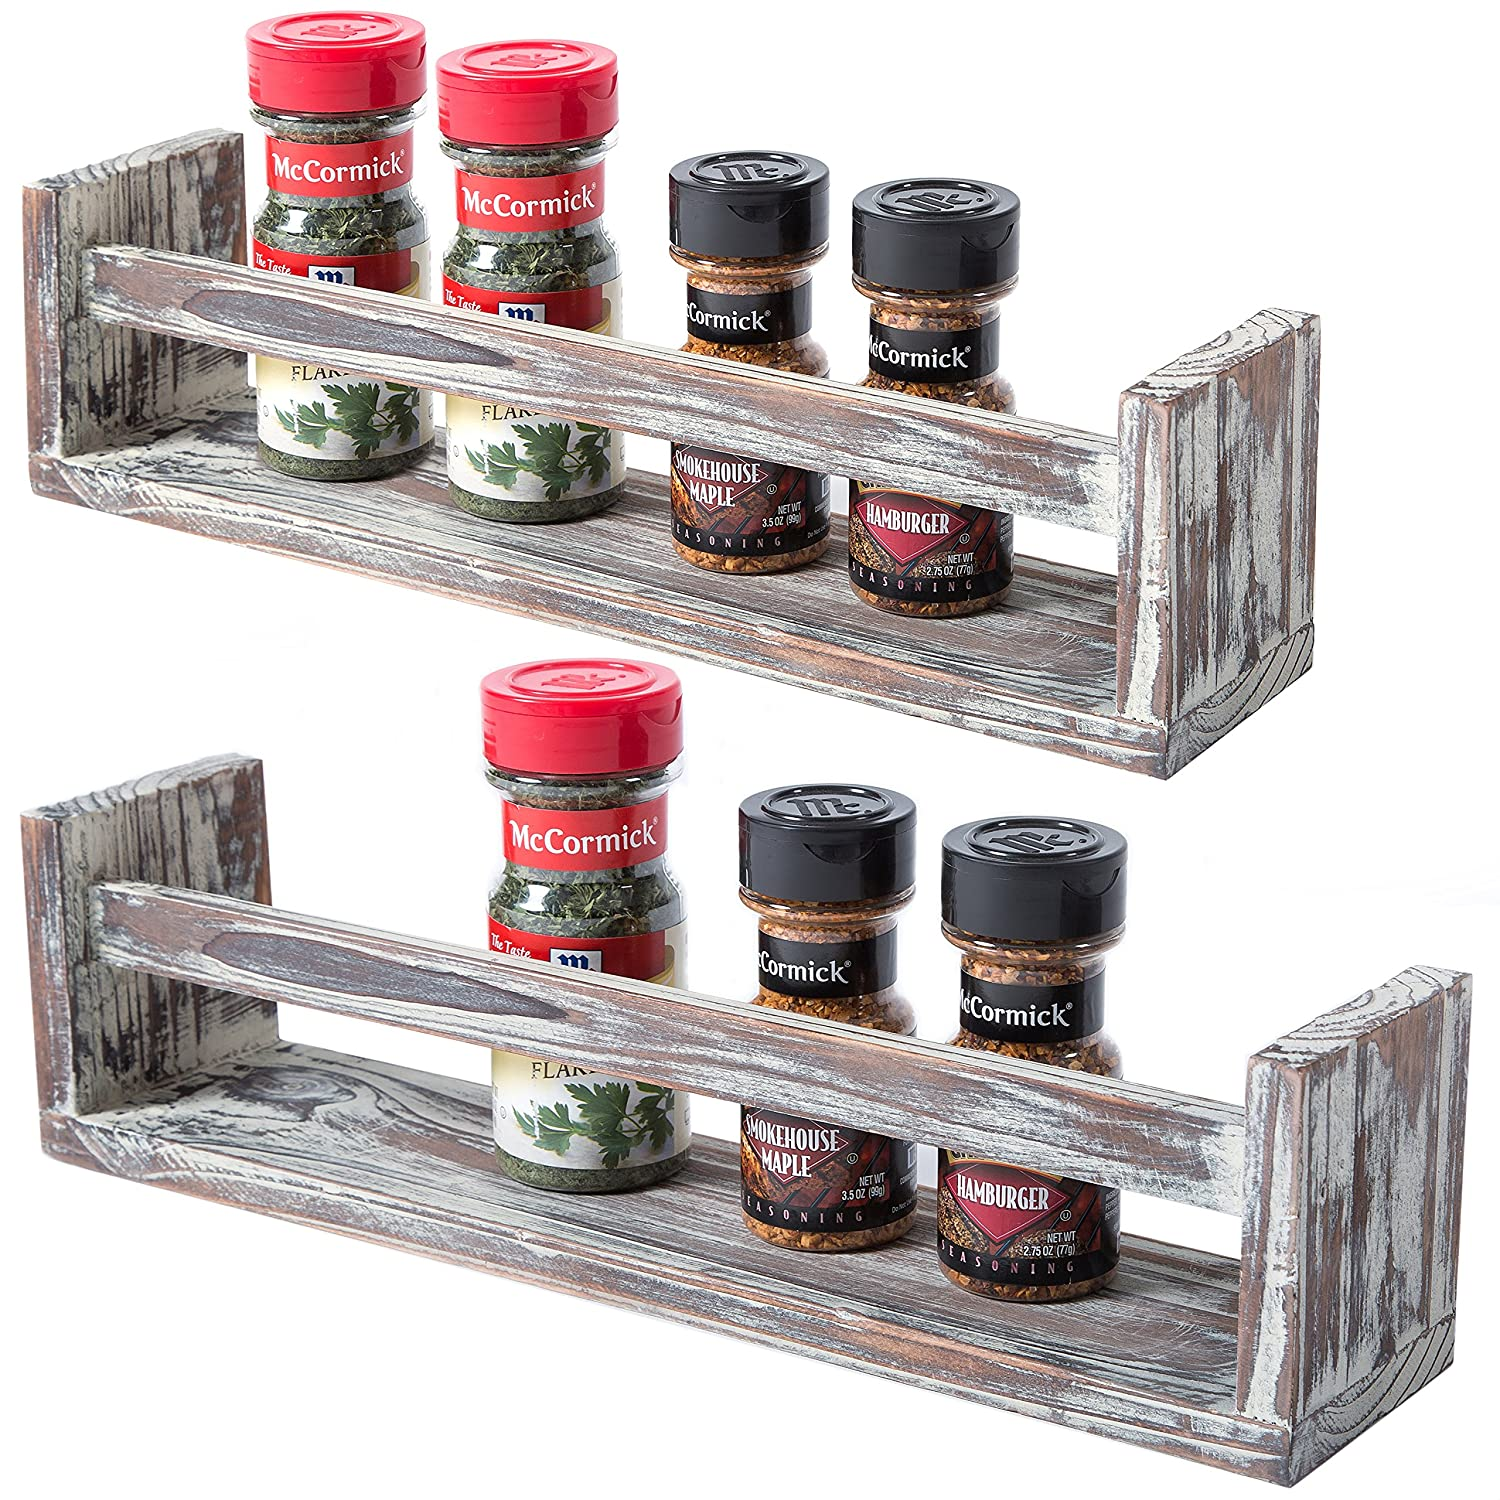 Set of 2 Wall Mounted Dark Brown Torched Wood Finish Spice Racks, Kitchen Storage Shelves MyGift SPOMHNK2957